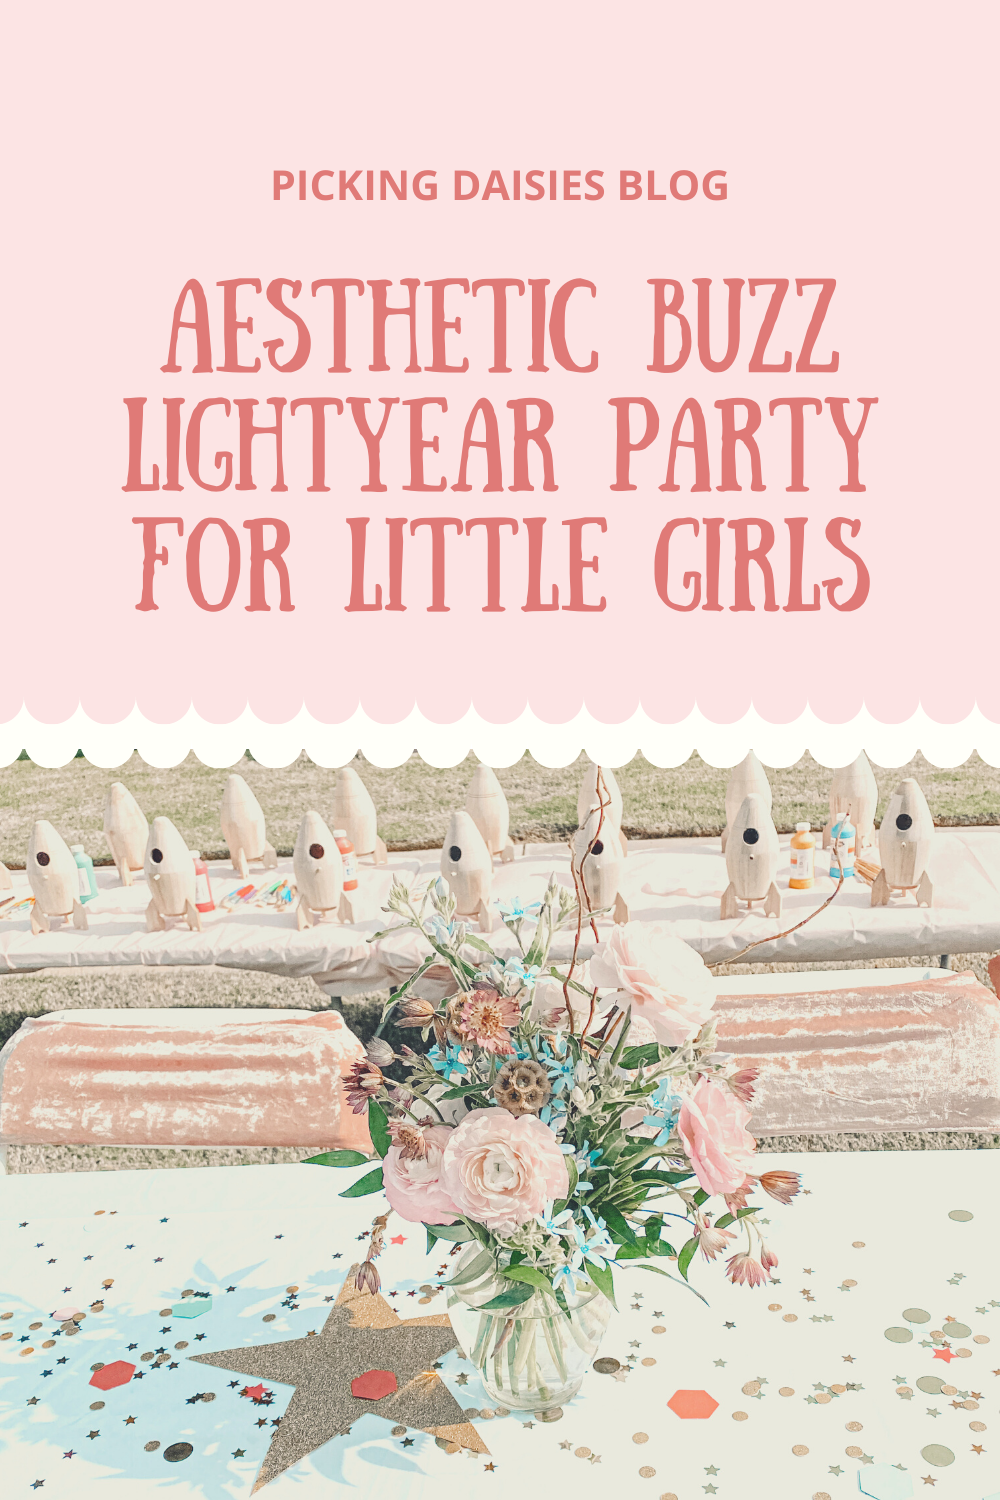 Aesthetic Buzz Lightyear Party For Little Girls